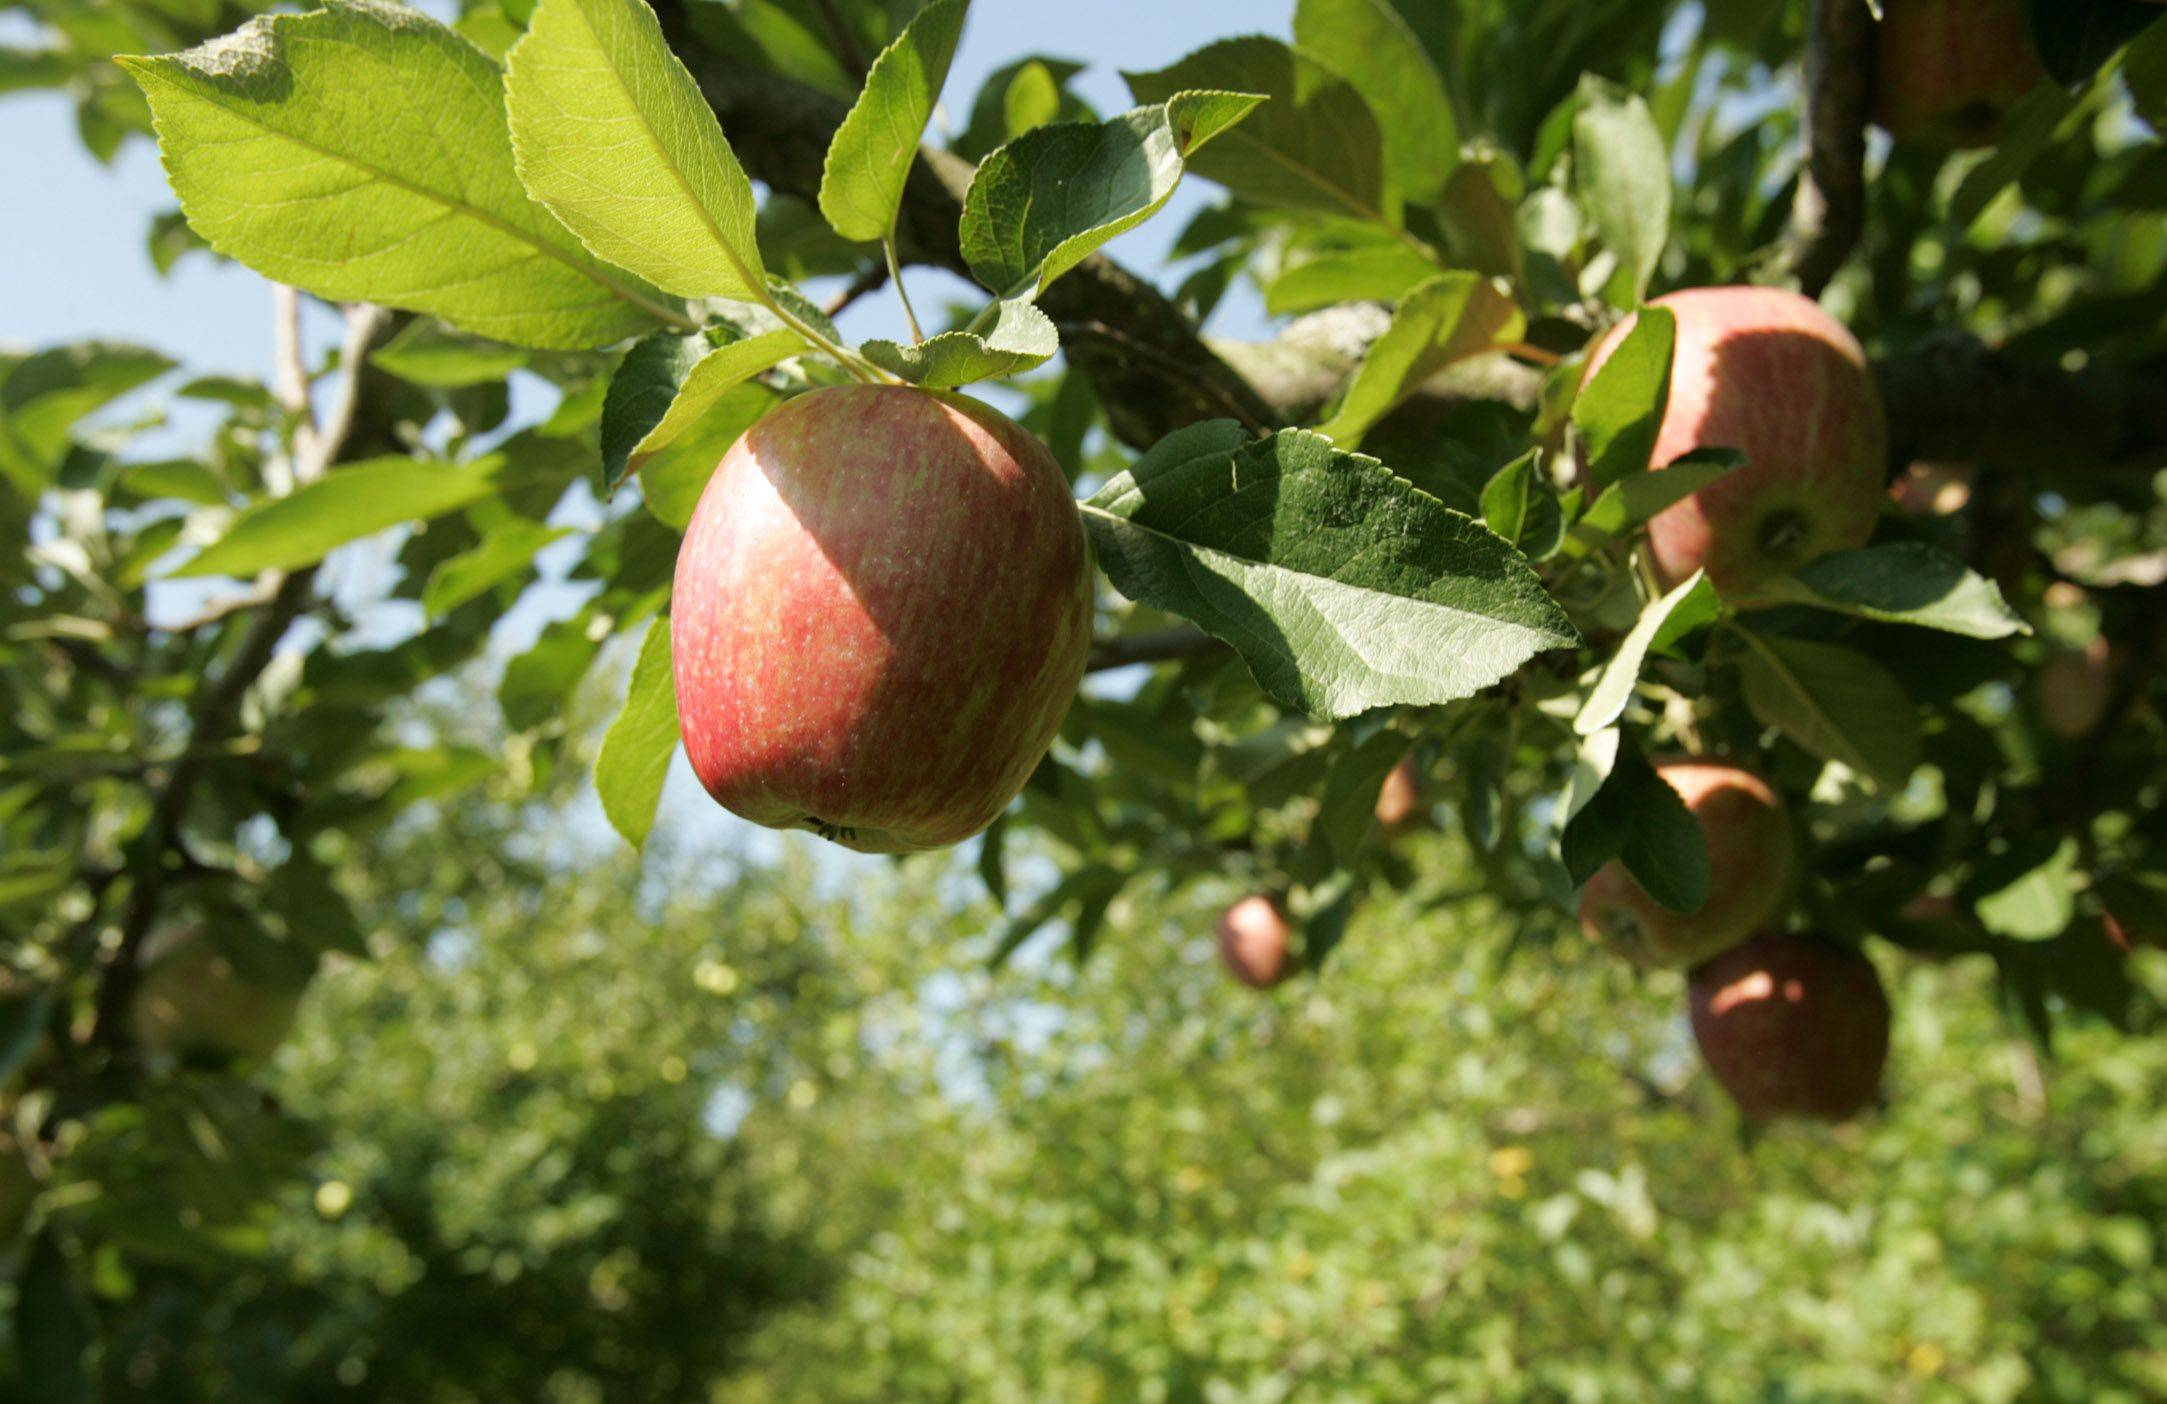 A number of different apple varieties will soon be ripe for the picking at More Than Delicious apple orchard in Woodstock.